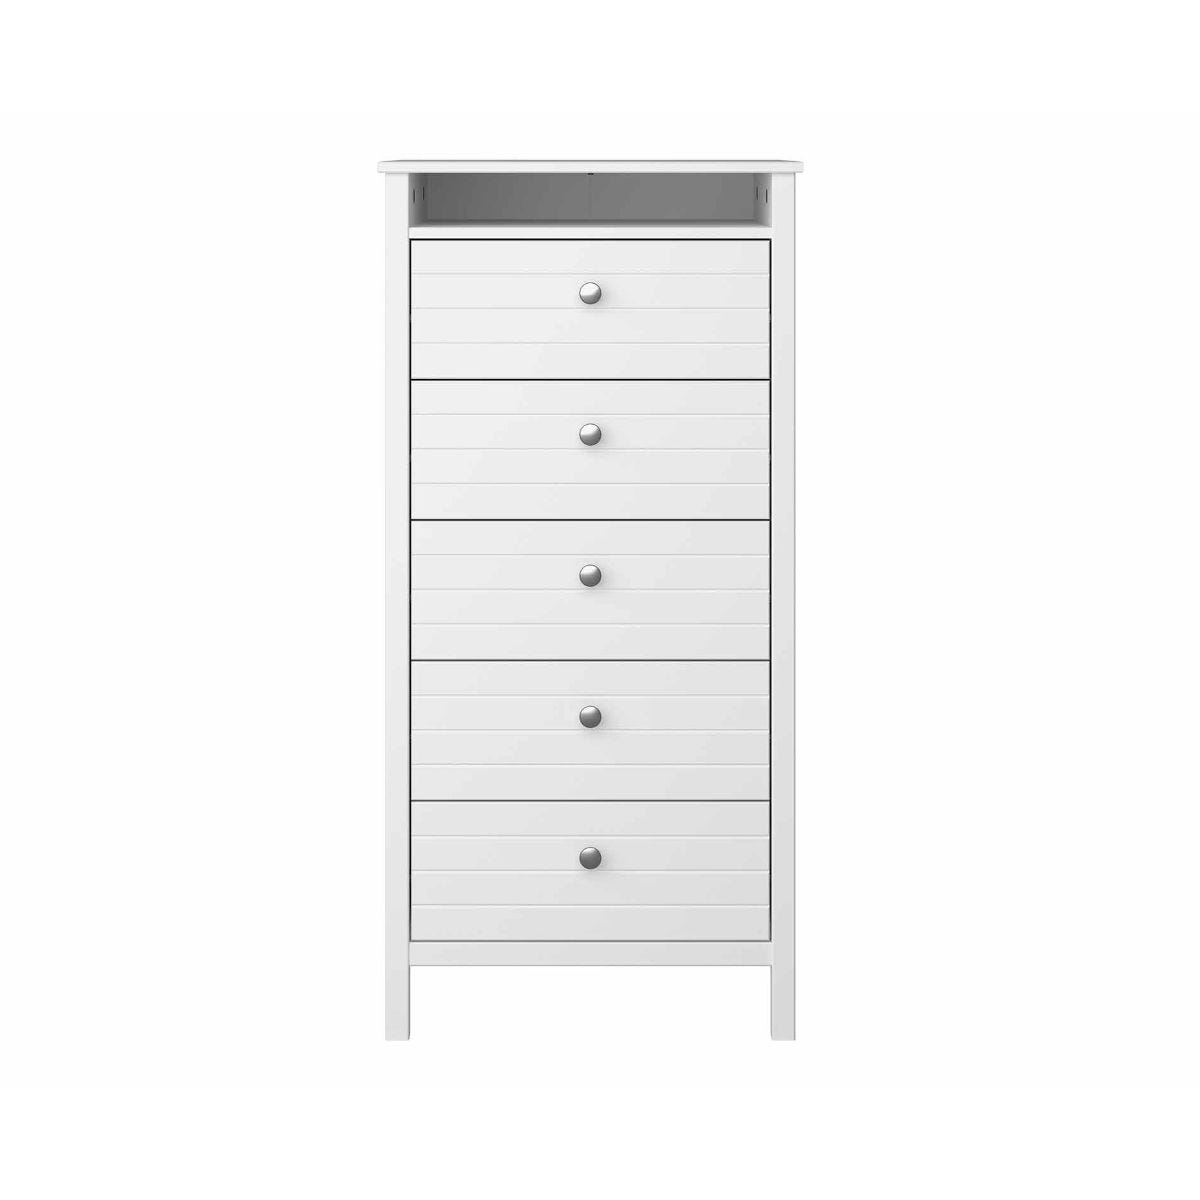 Steens New York 5 Drawer Narrow Chest, White